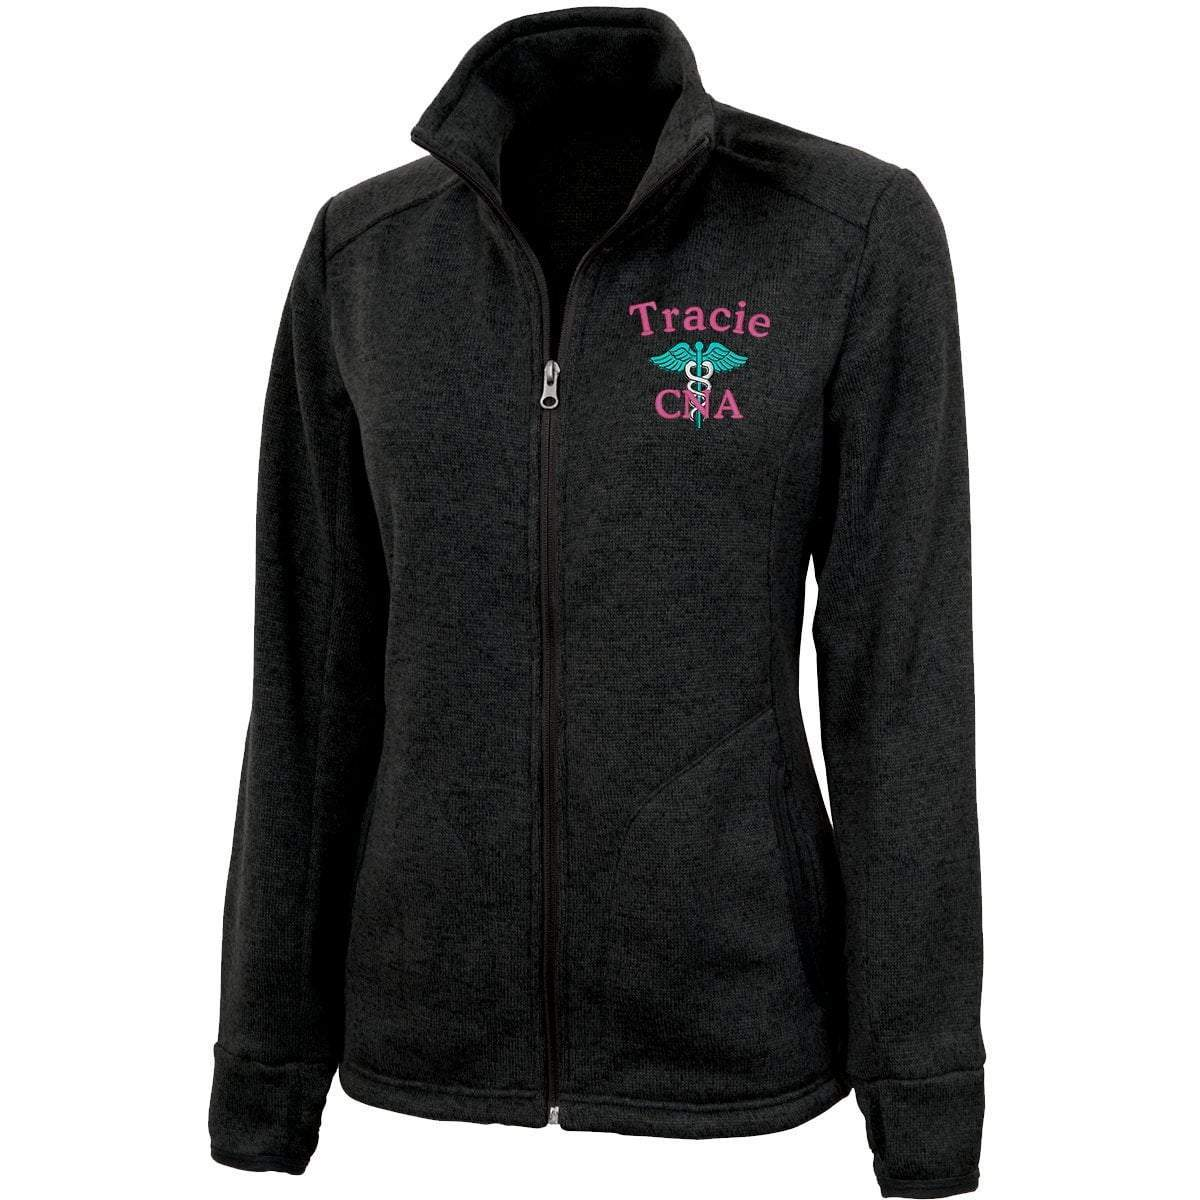 Charles River Apparel jackets Black Heather / XS 5493 |  Charles River Women's Heathered Fleece Jacket